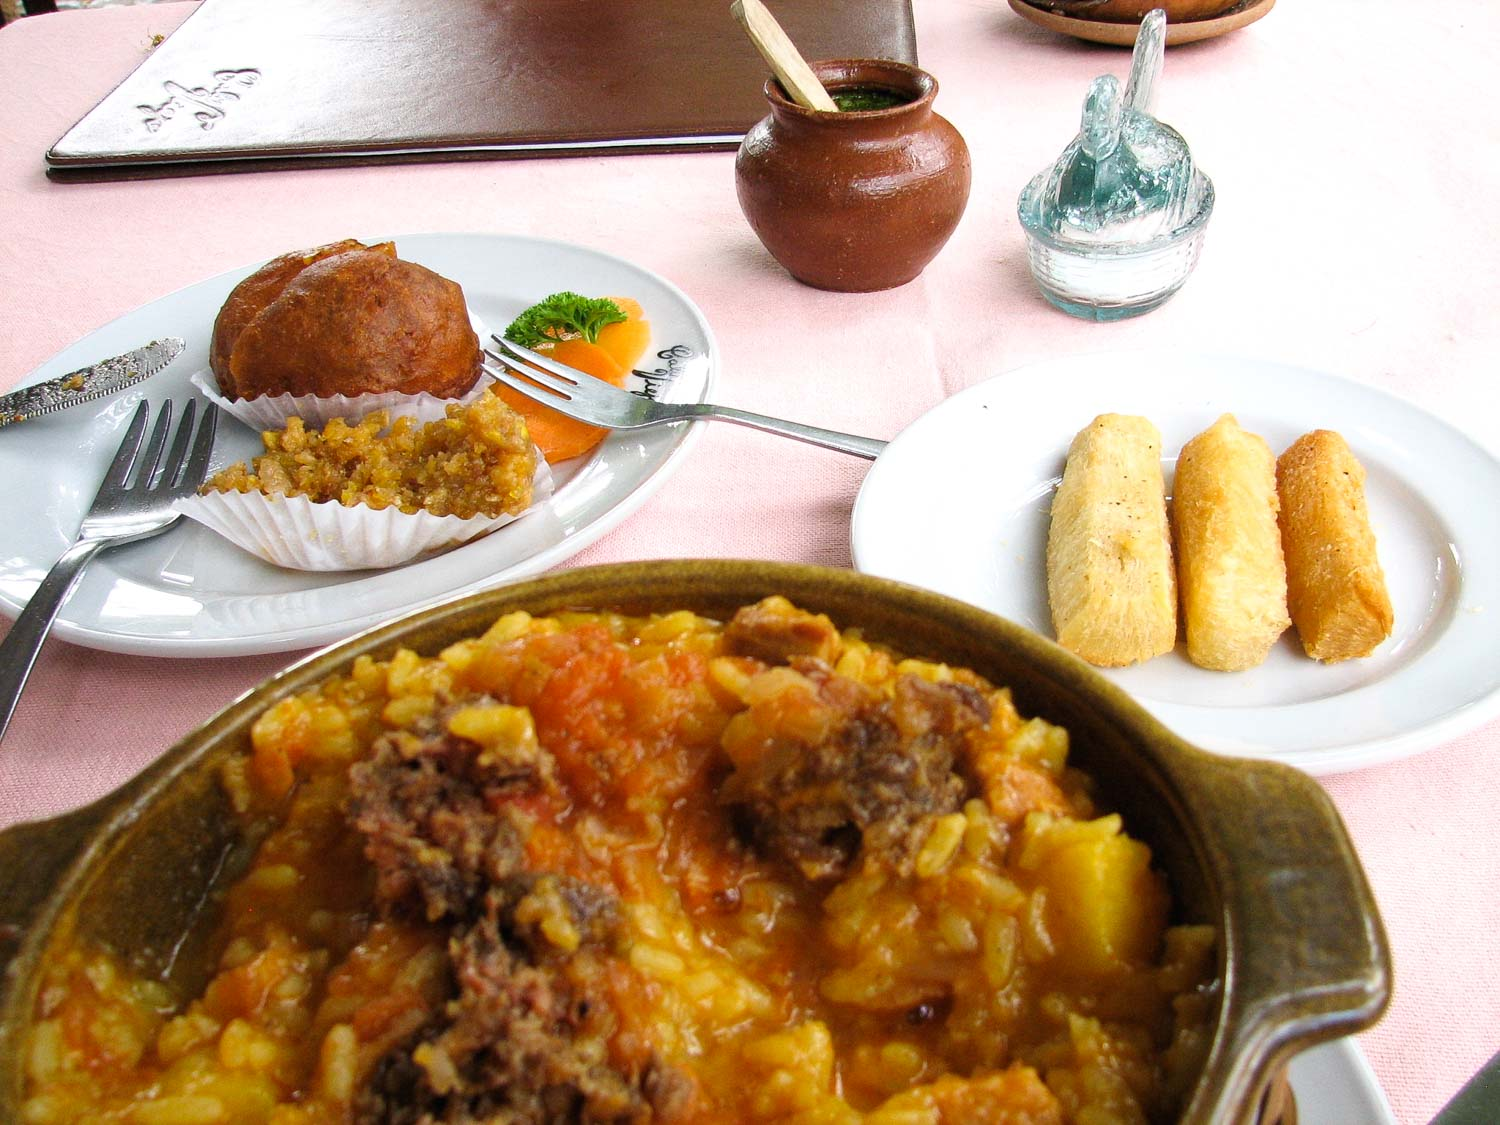 Arroz atollado is a rice dish in traditional Colombian cuisine that is delicious.